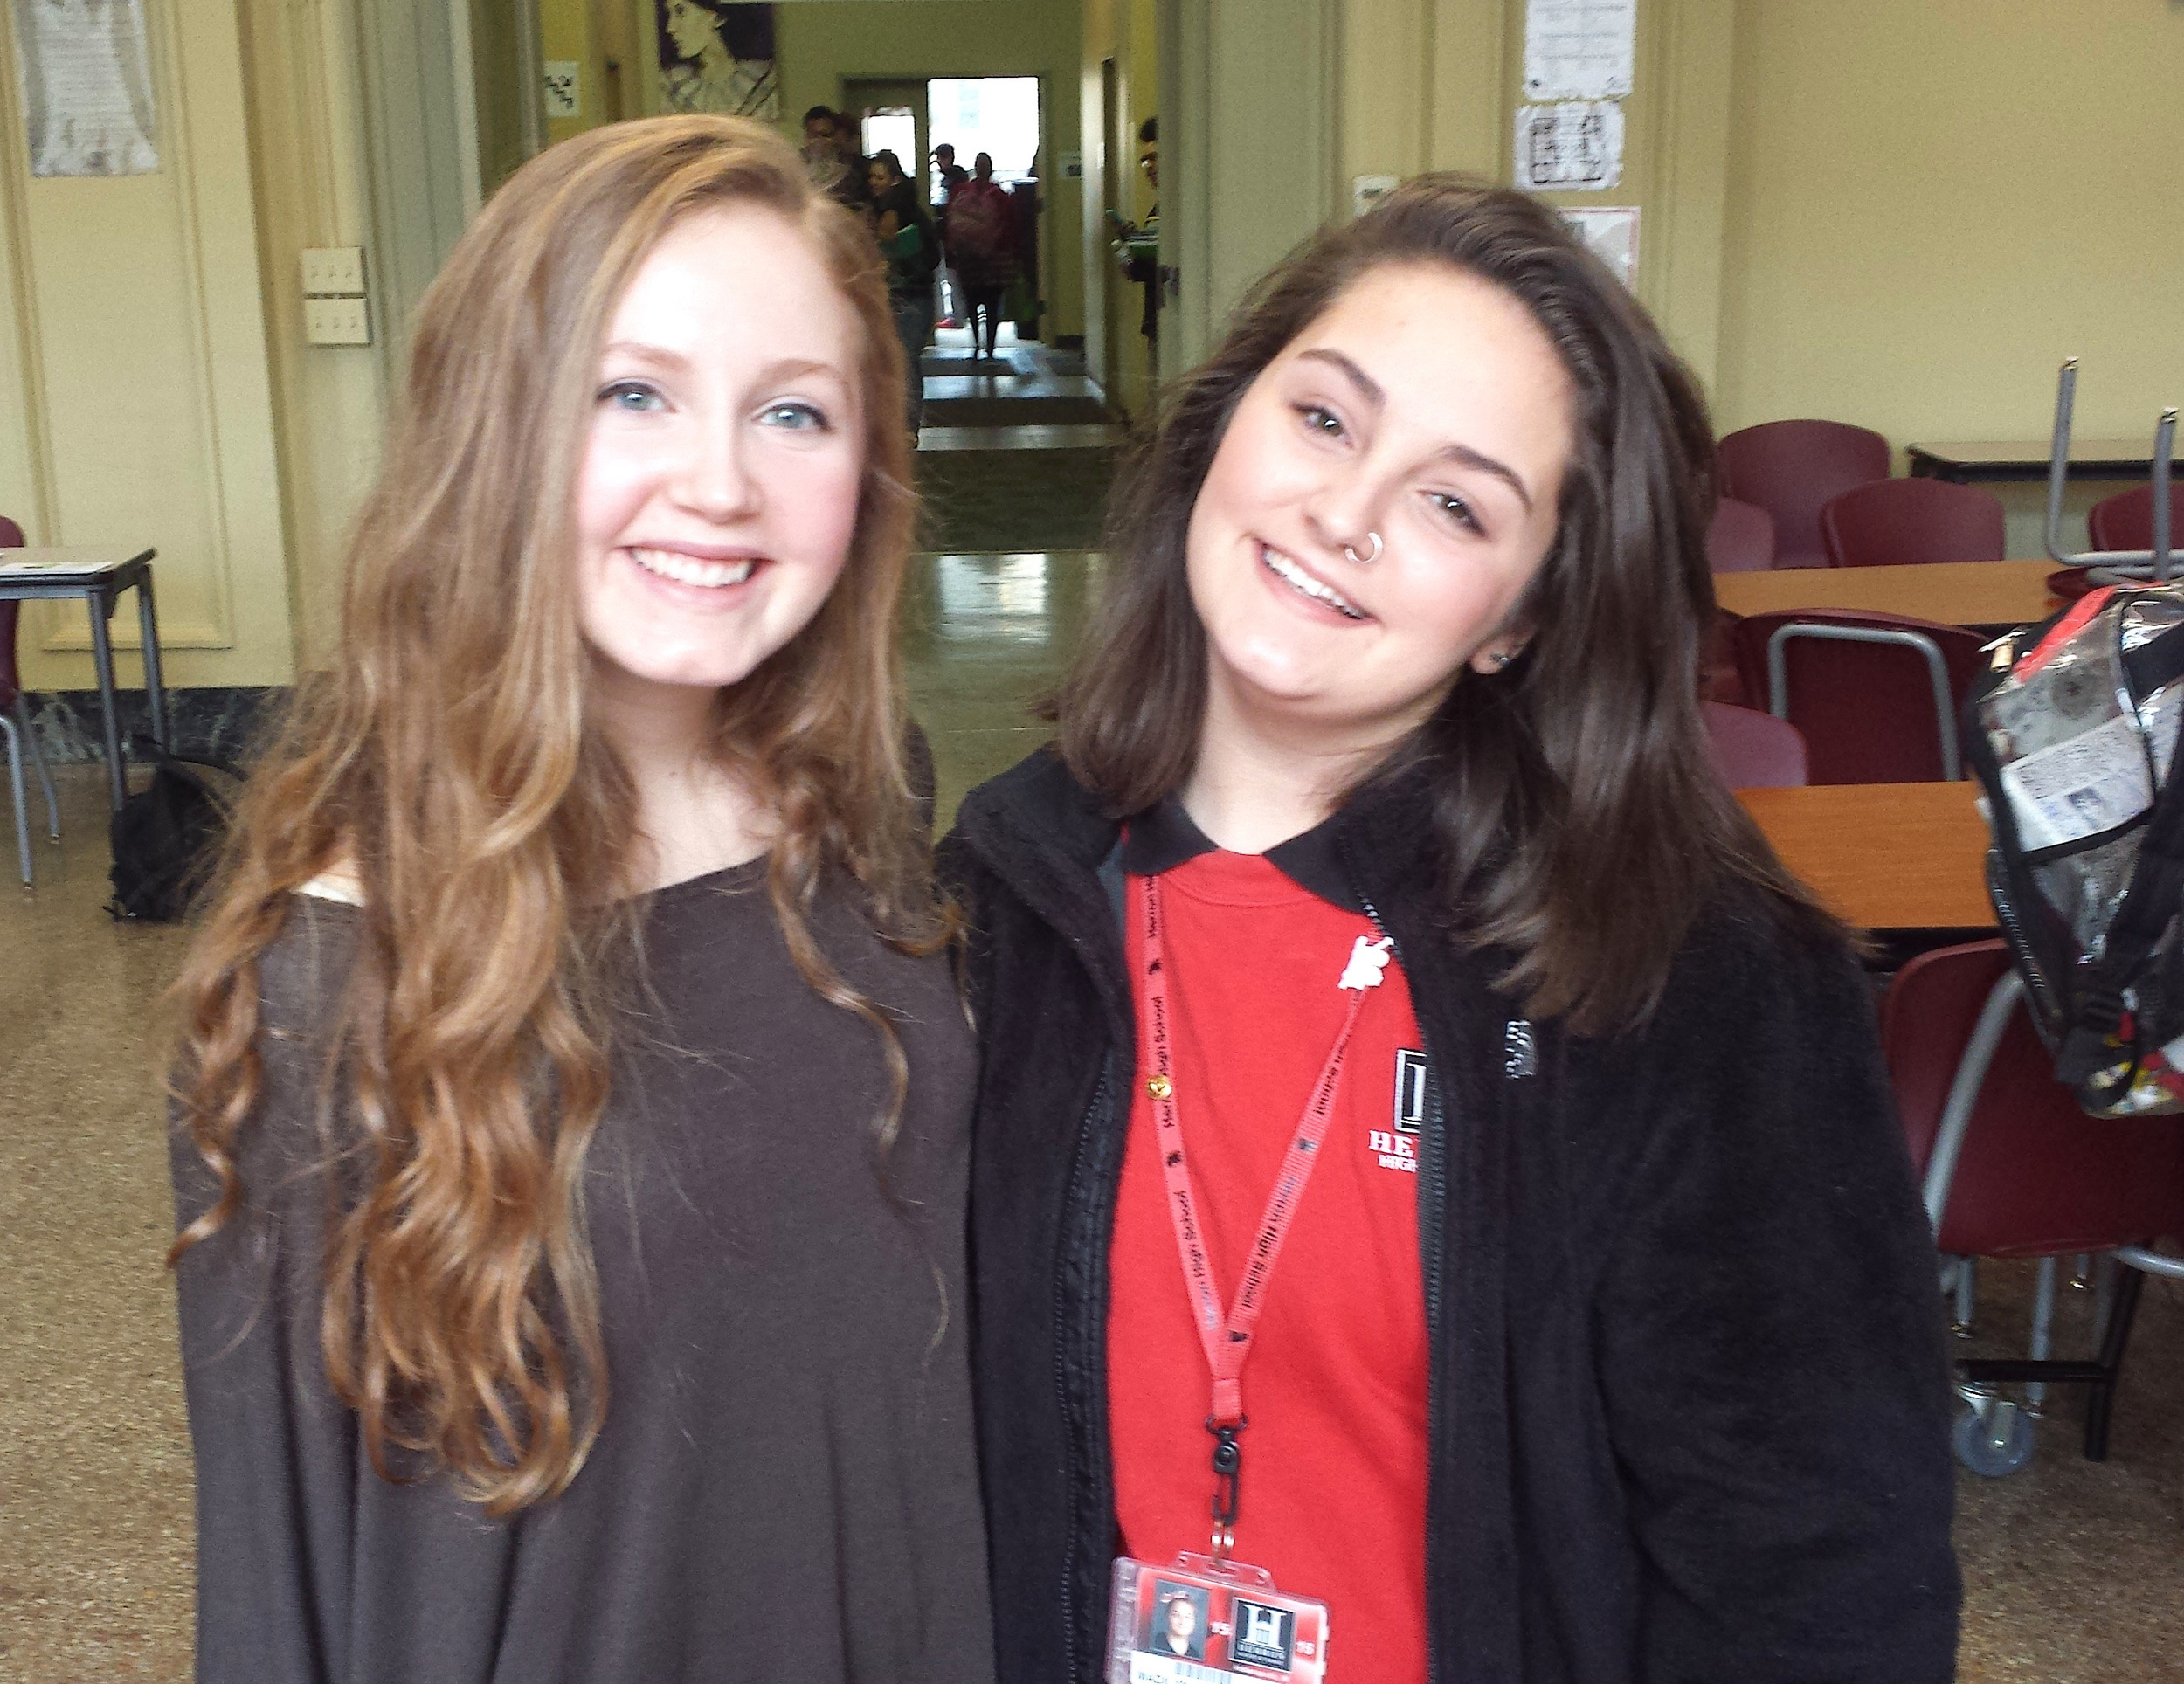 Two youth leaders, both named Maddie: Maddie Adkins from Carmel (left) and Maddie Brooks of Indianapolis. Adkins spoke at Brooks' school, Herron High School, in the spring of 2016, to enlist the help of more teens